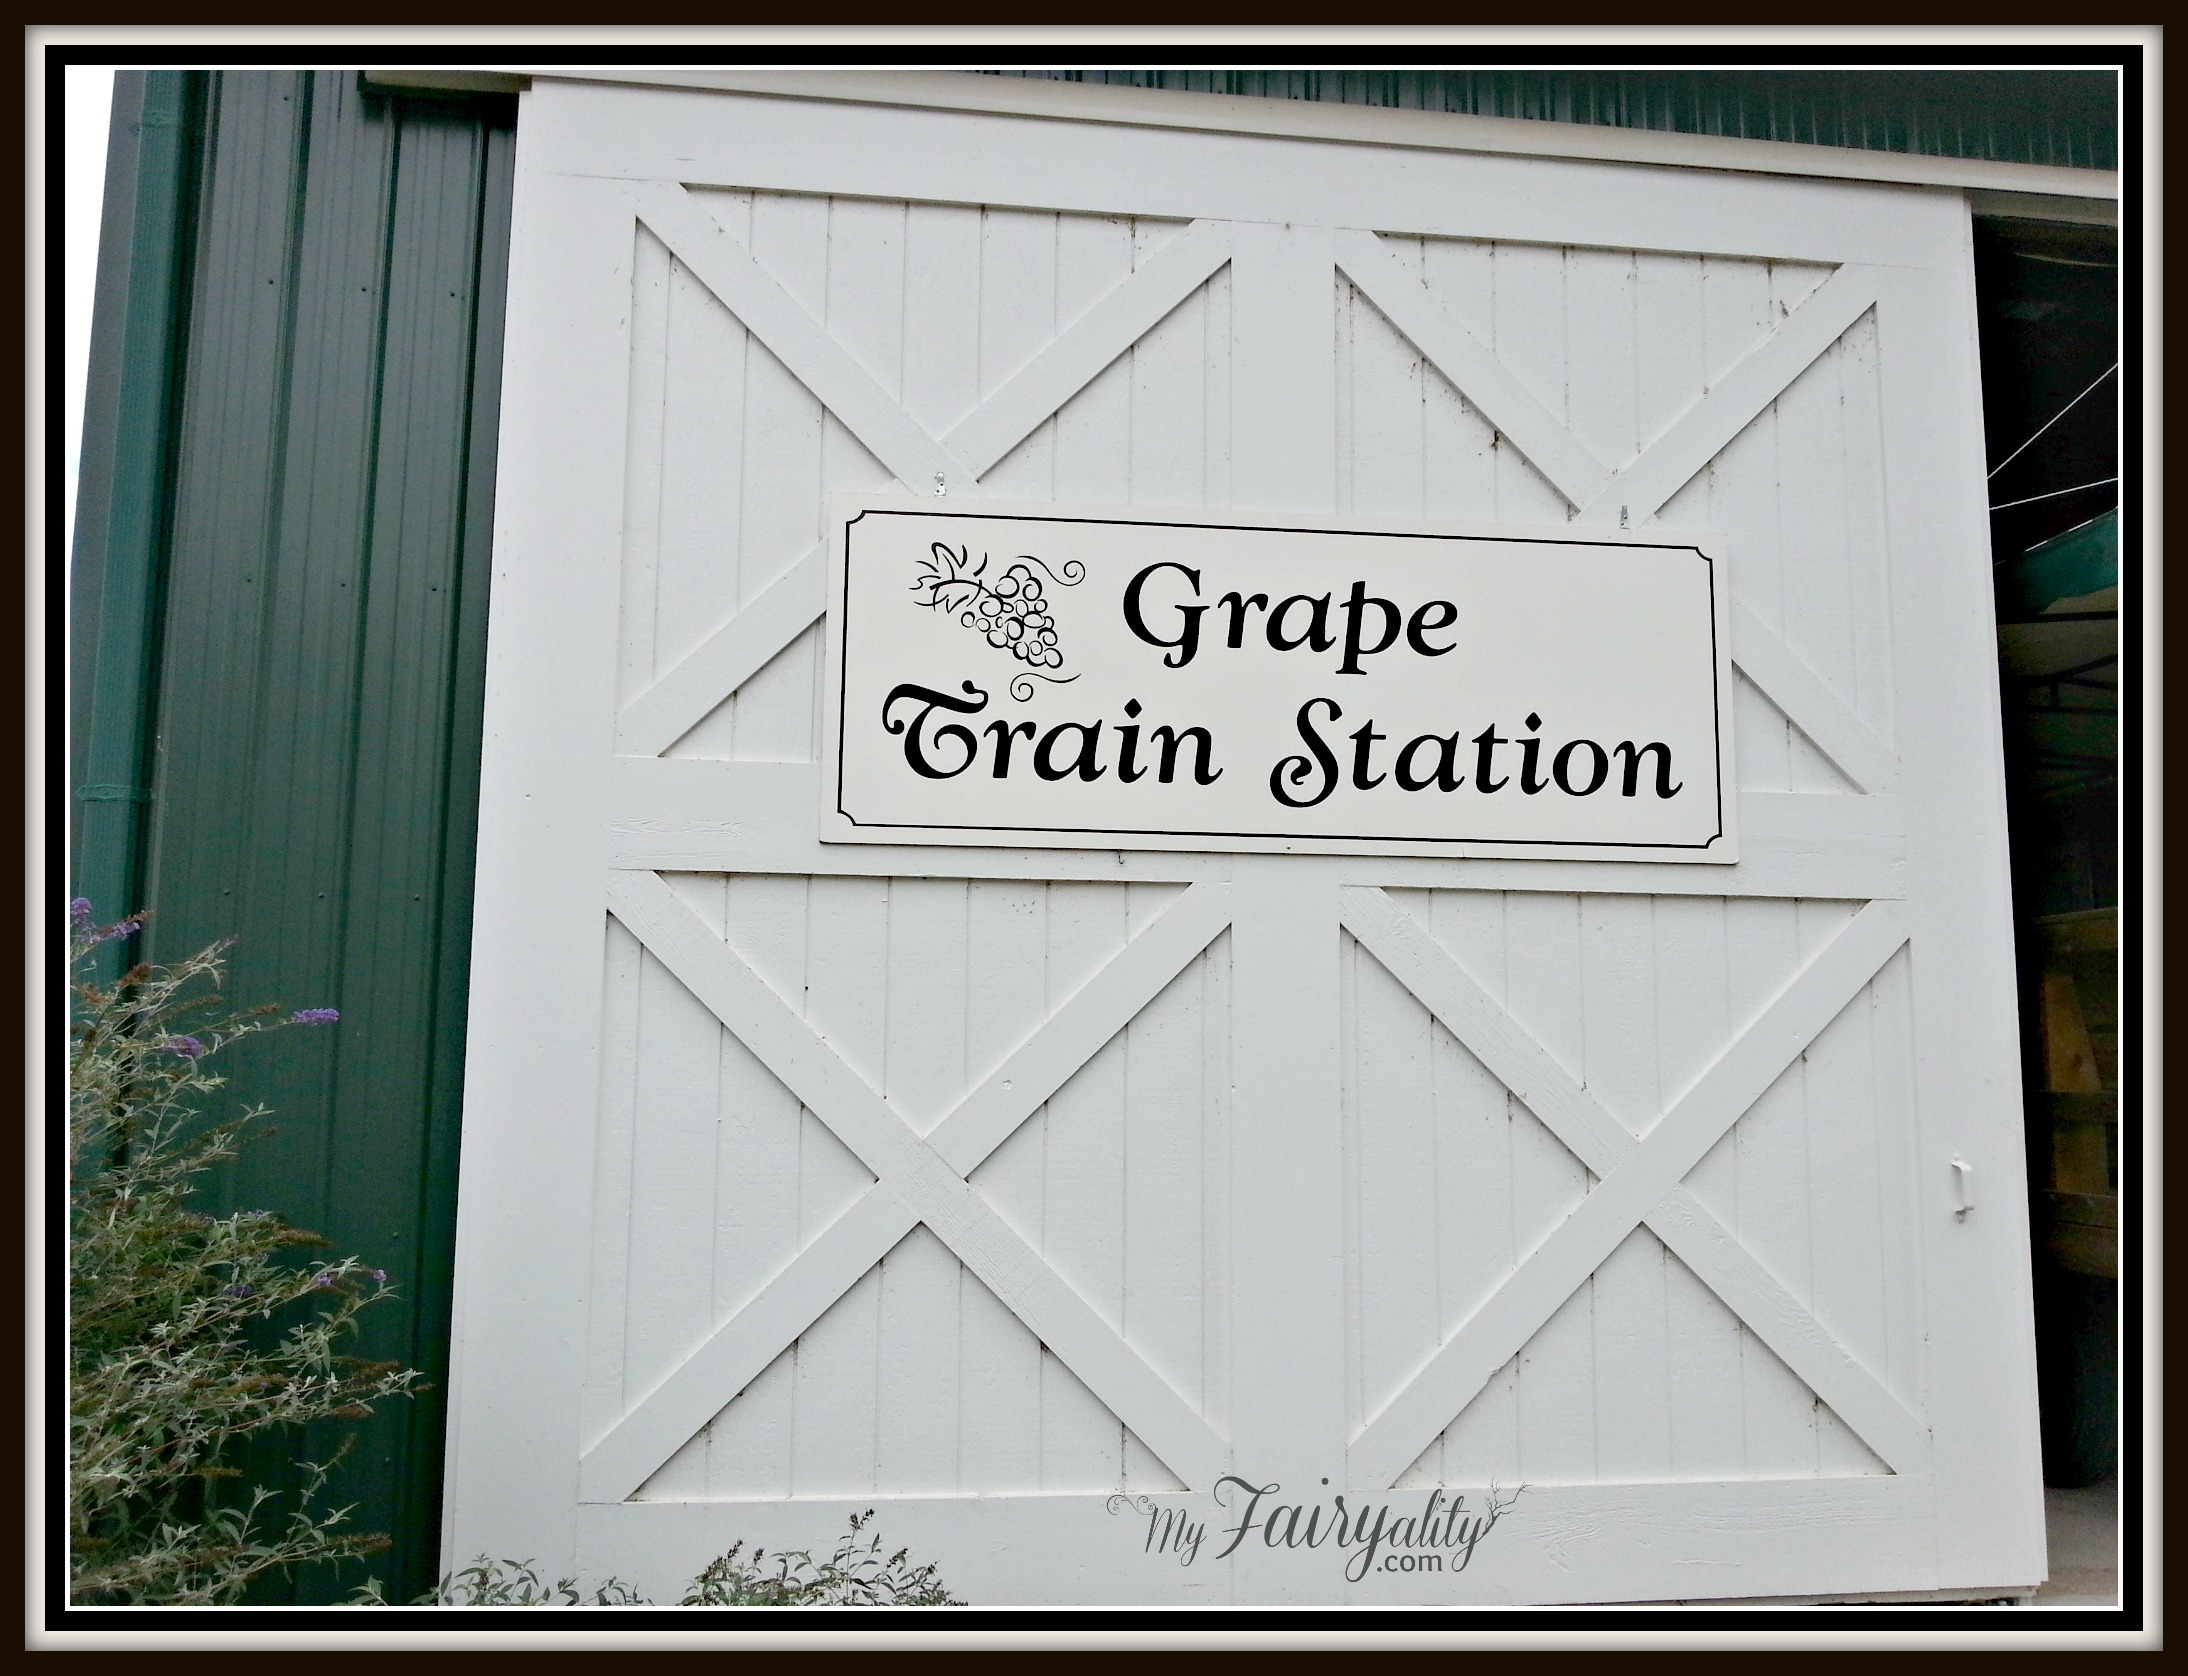 grape train